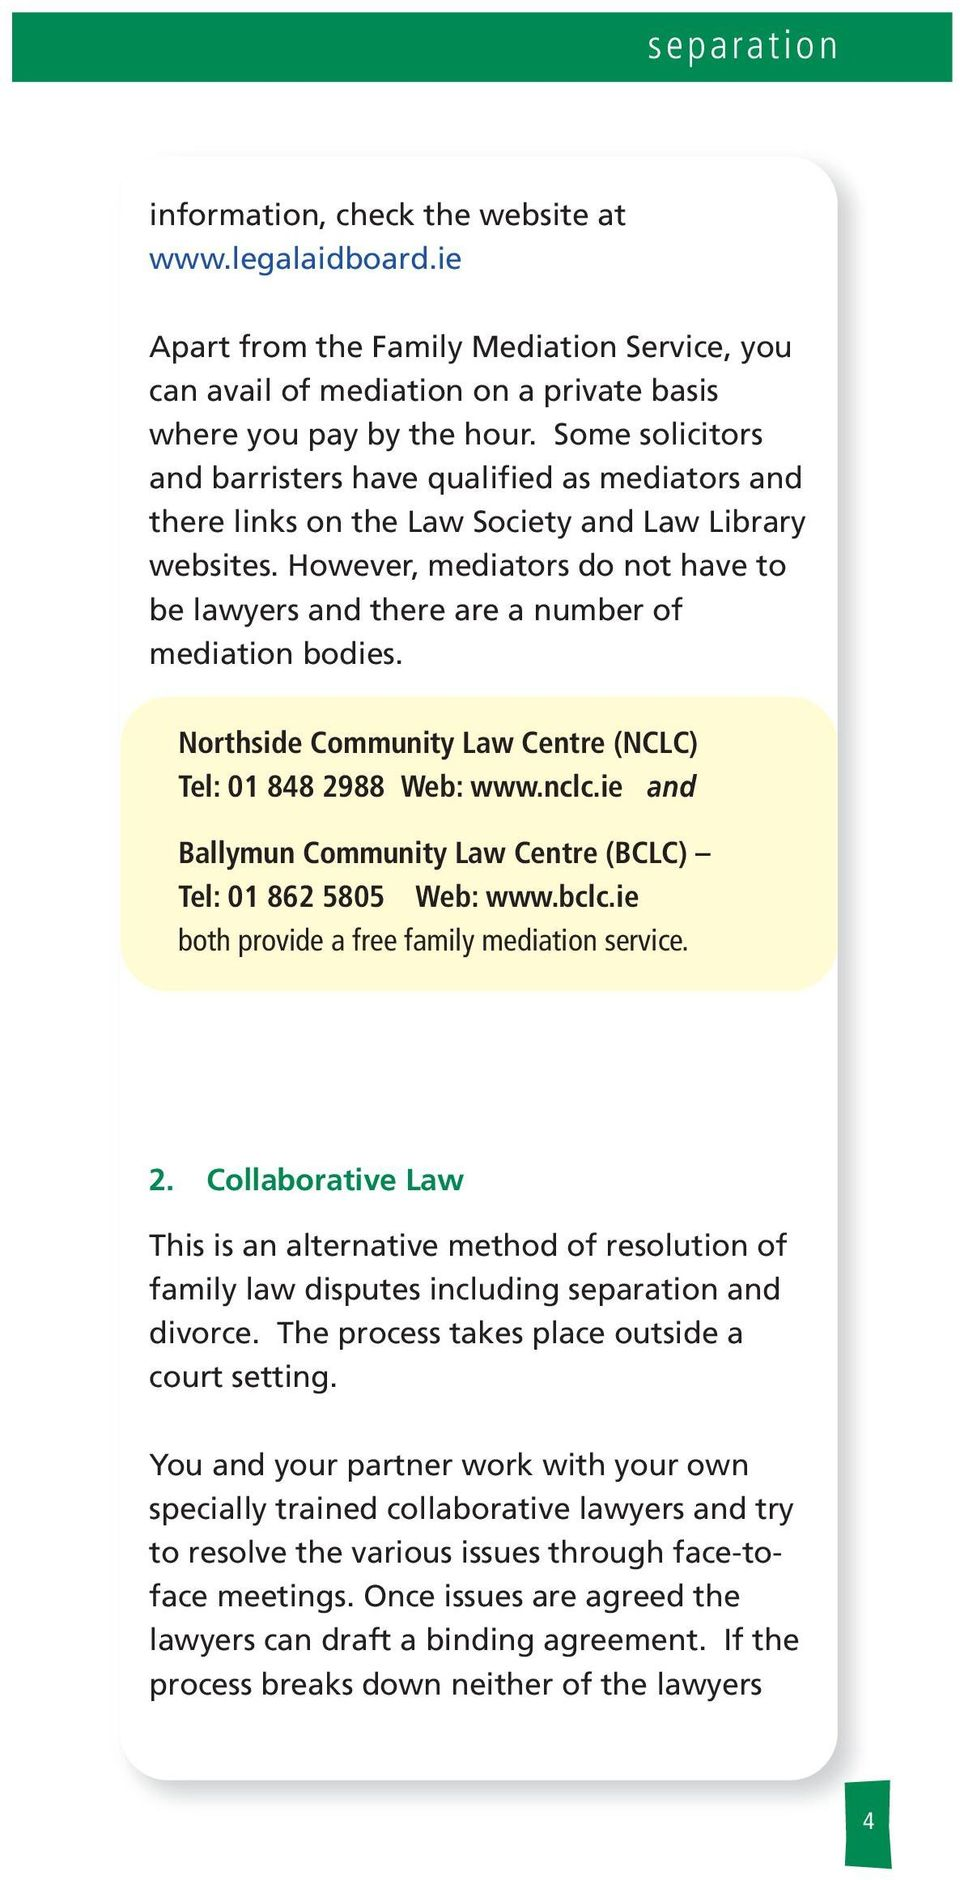 However, mediators do not have to be awyers and there are a number of mediation bodies. Northside Community Law Centre (NCLC) Te: 01 848 2988 Web: www.ncc.